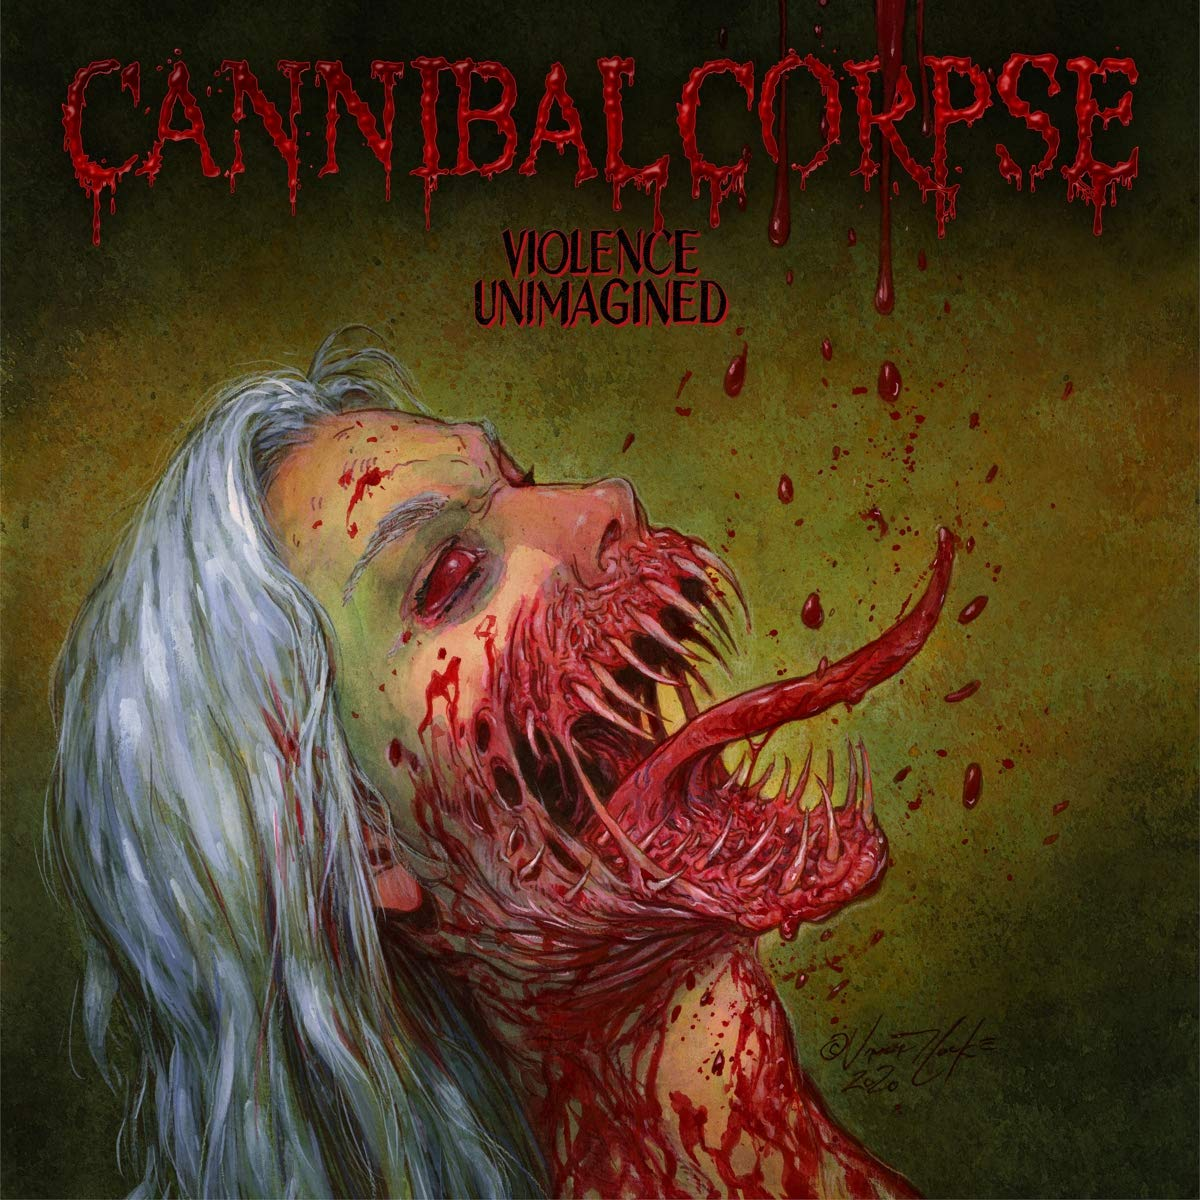 Review-Cannibal-Corpse-VIOLENCE-UNIMAGINED